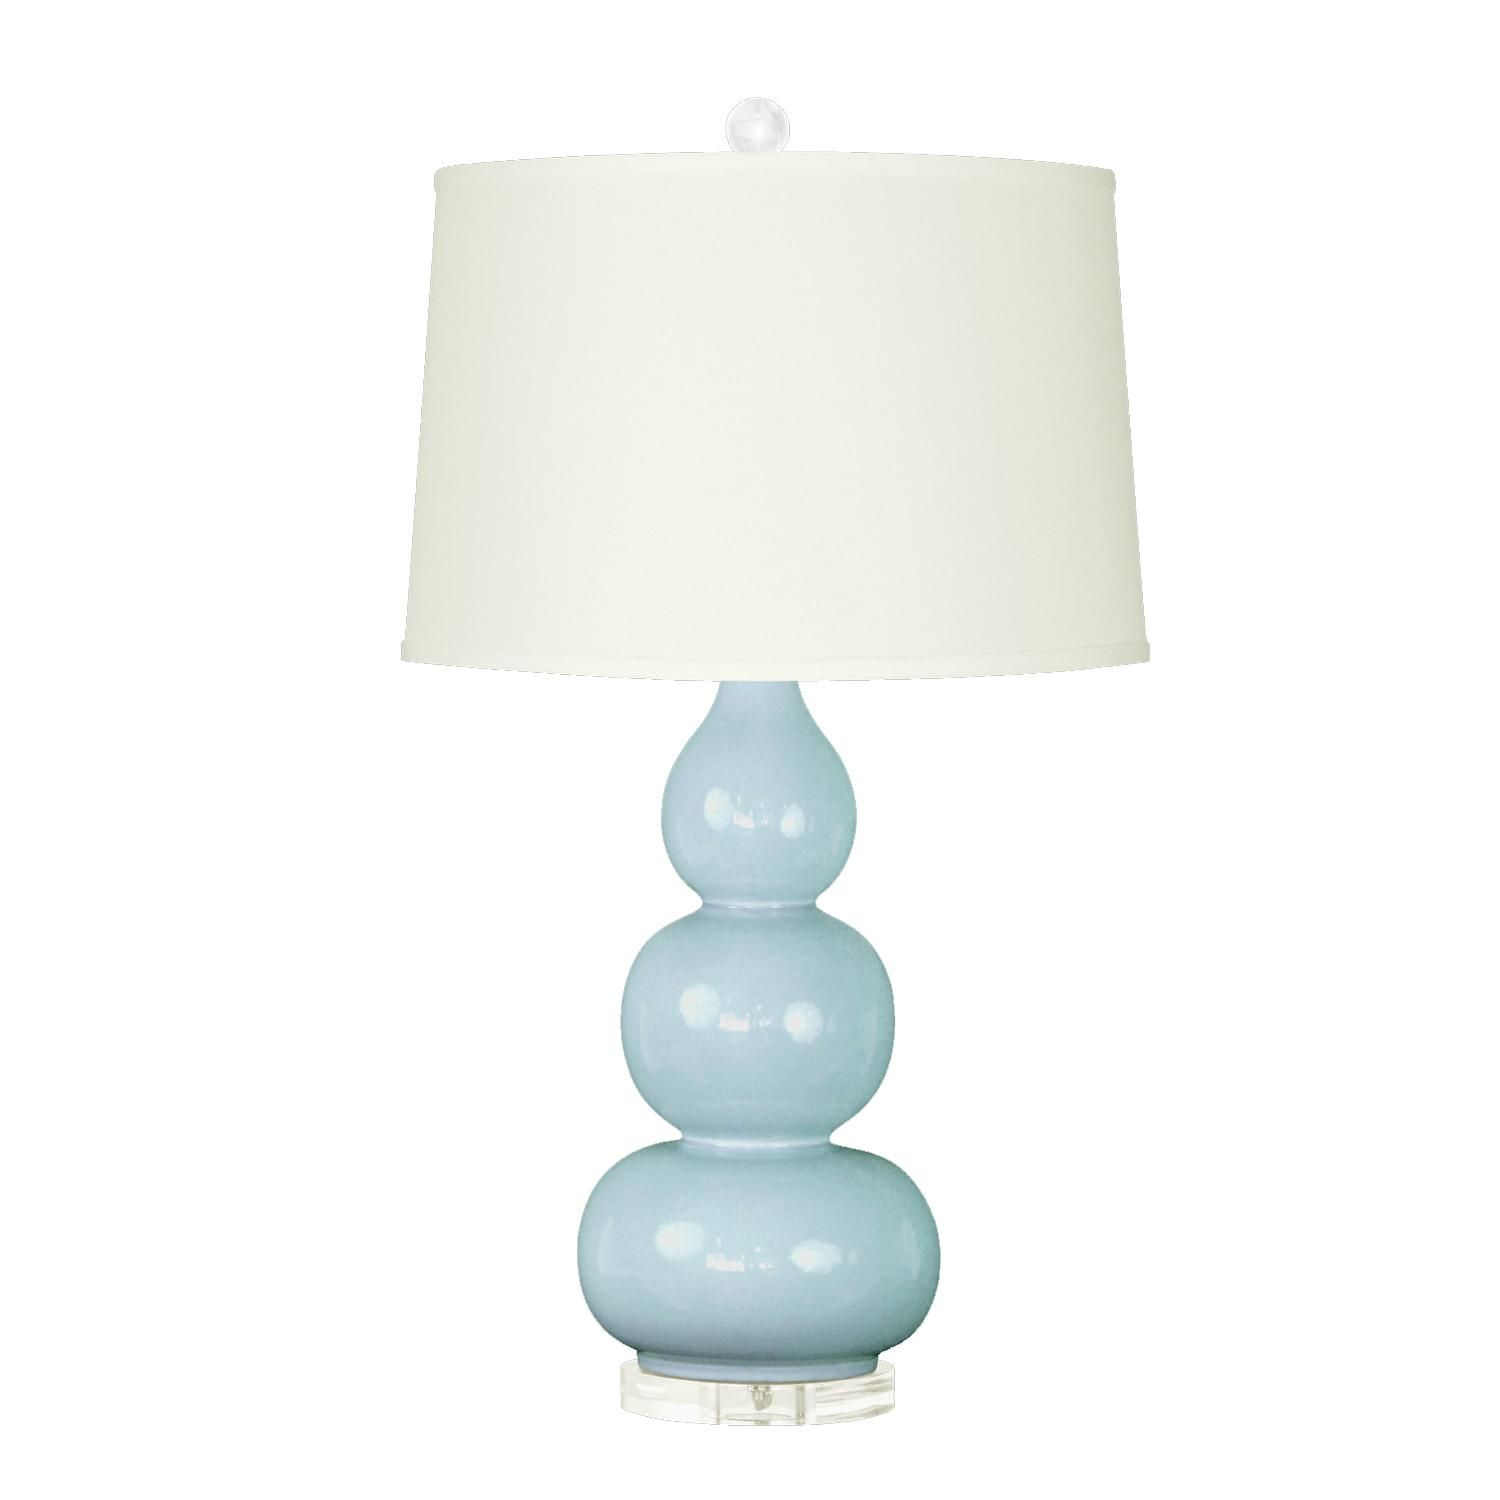 Buy Your Light Blue Hutton Lamp Base By Bungalow 5 Here. The Light Blue  Hutton Lamp Base Will Illuminate Your Space! Made Of American Ceramic.